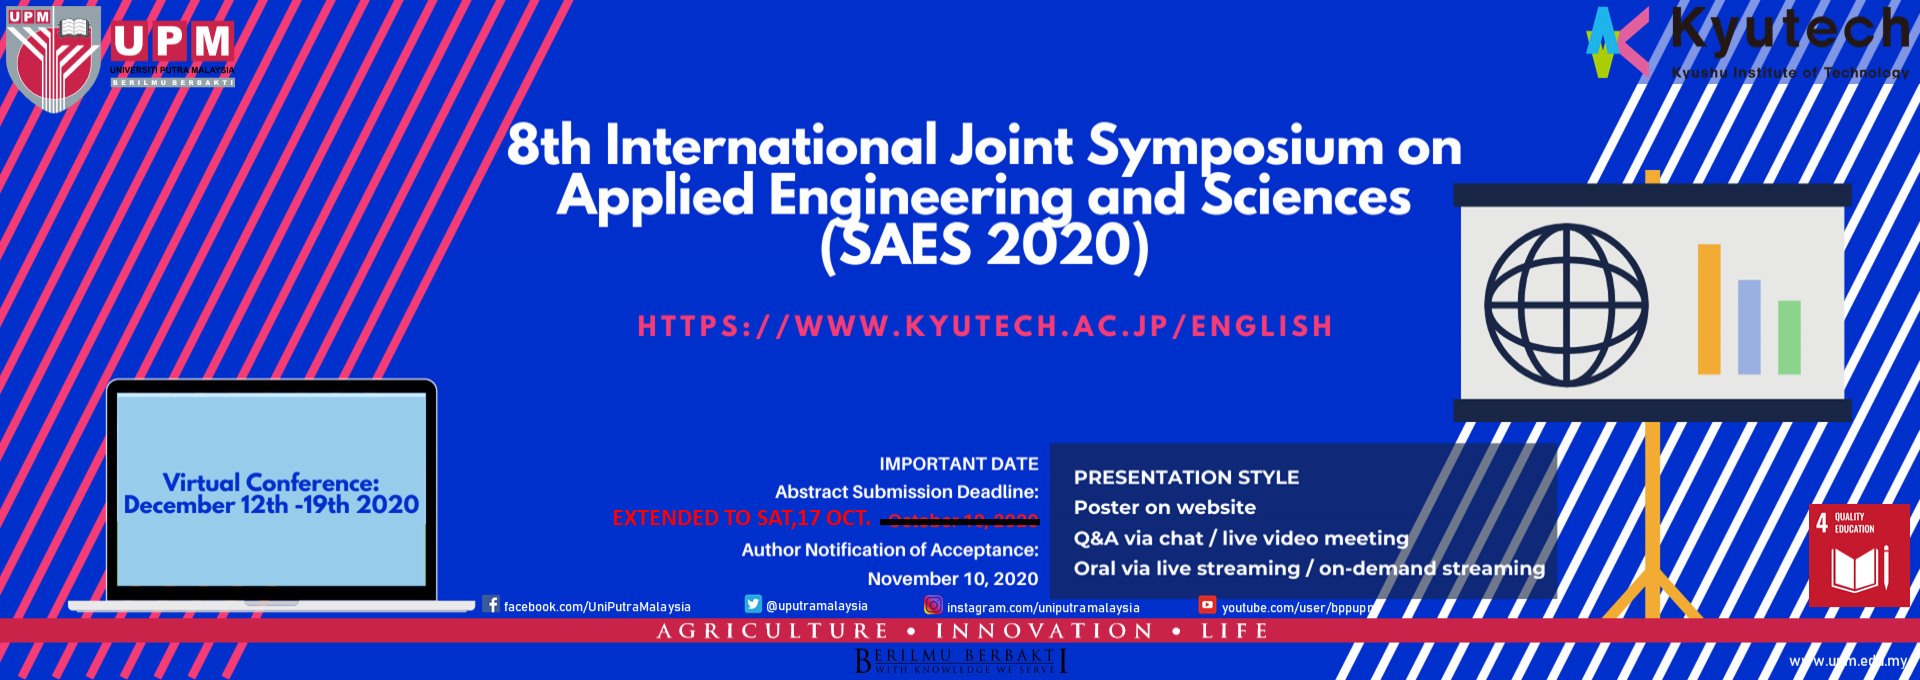 8th International Joint Symposium on Applied Engineering and Sciences (SAES 2020)